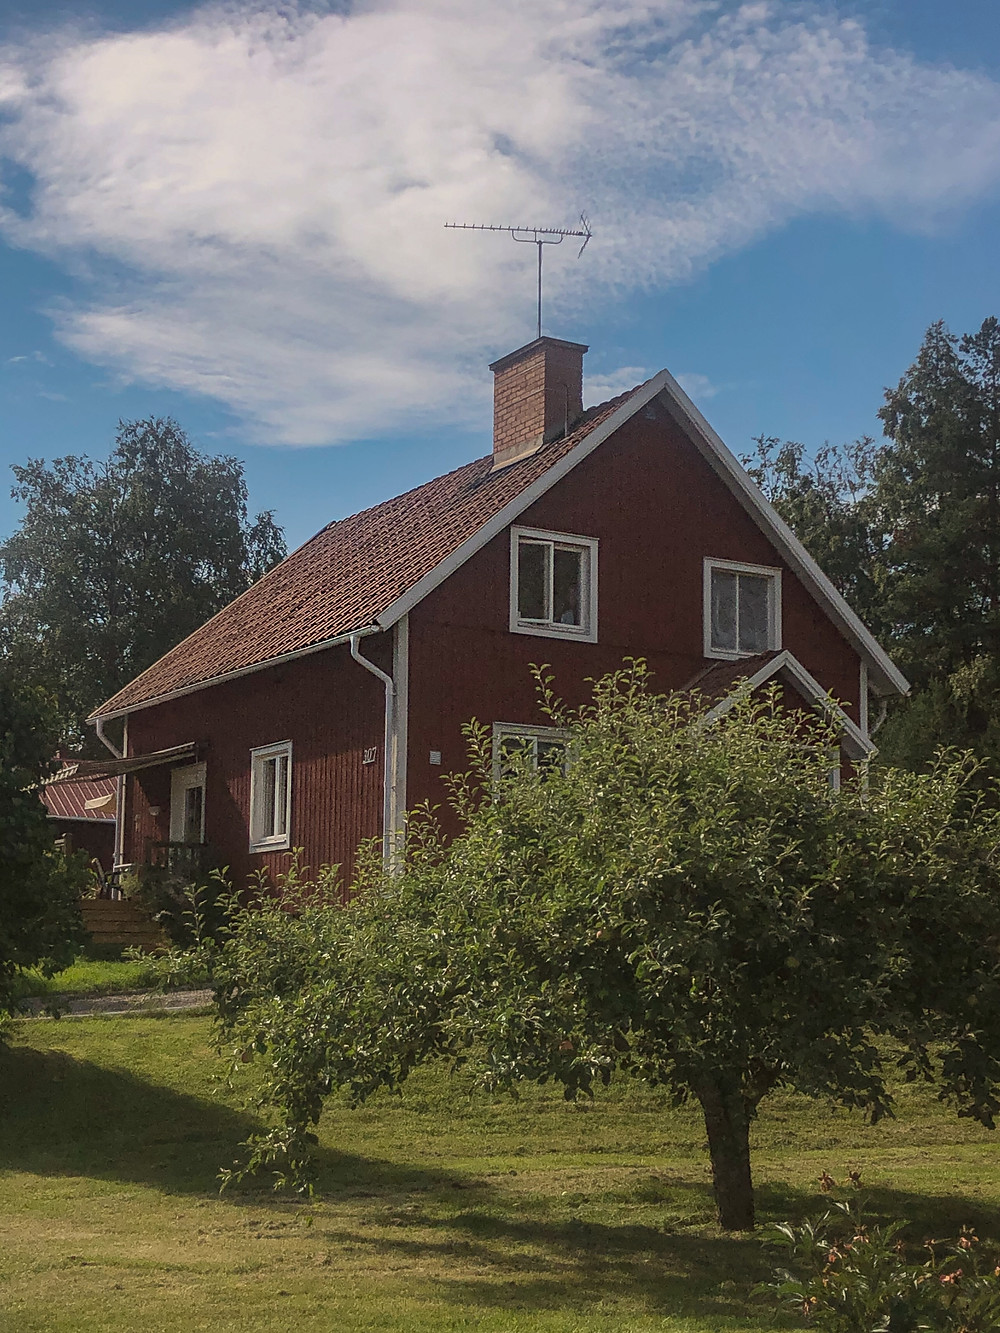 A traditional red, wooden detached Swedish villa against a blue sky with a green lawn and an apple tree obscuring the front door